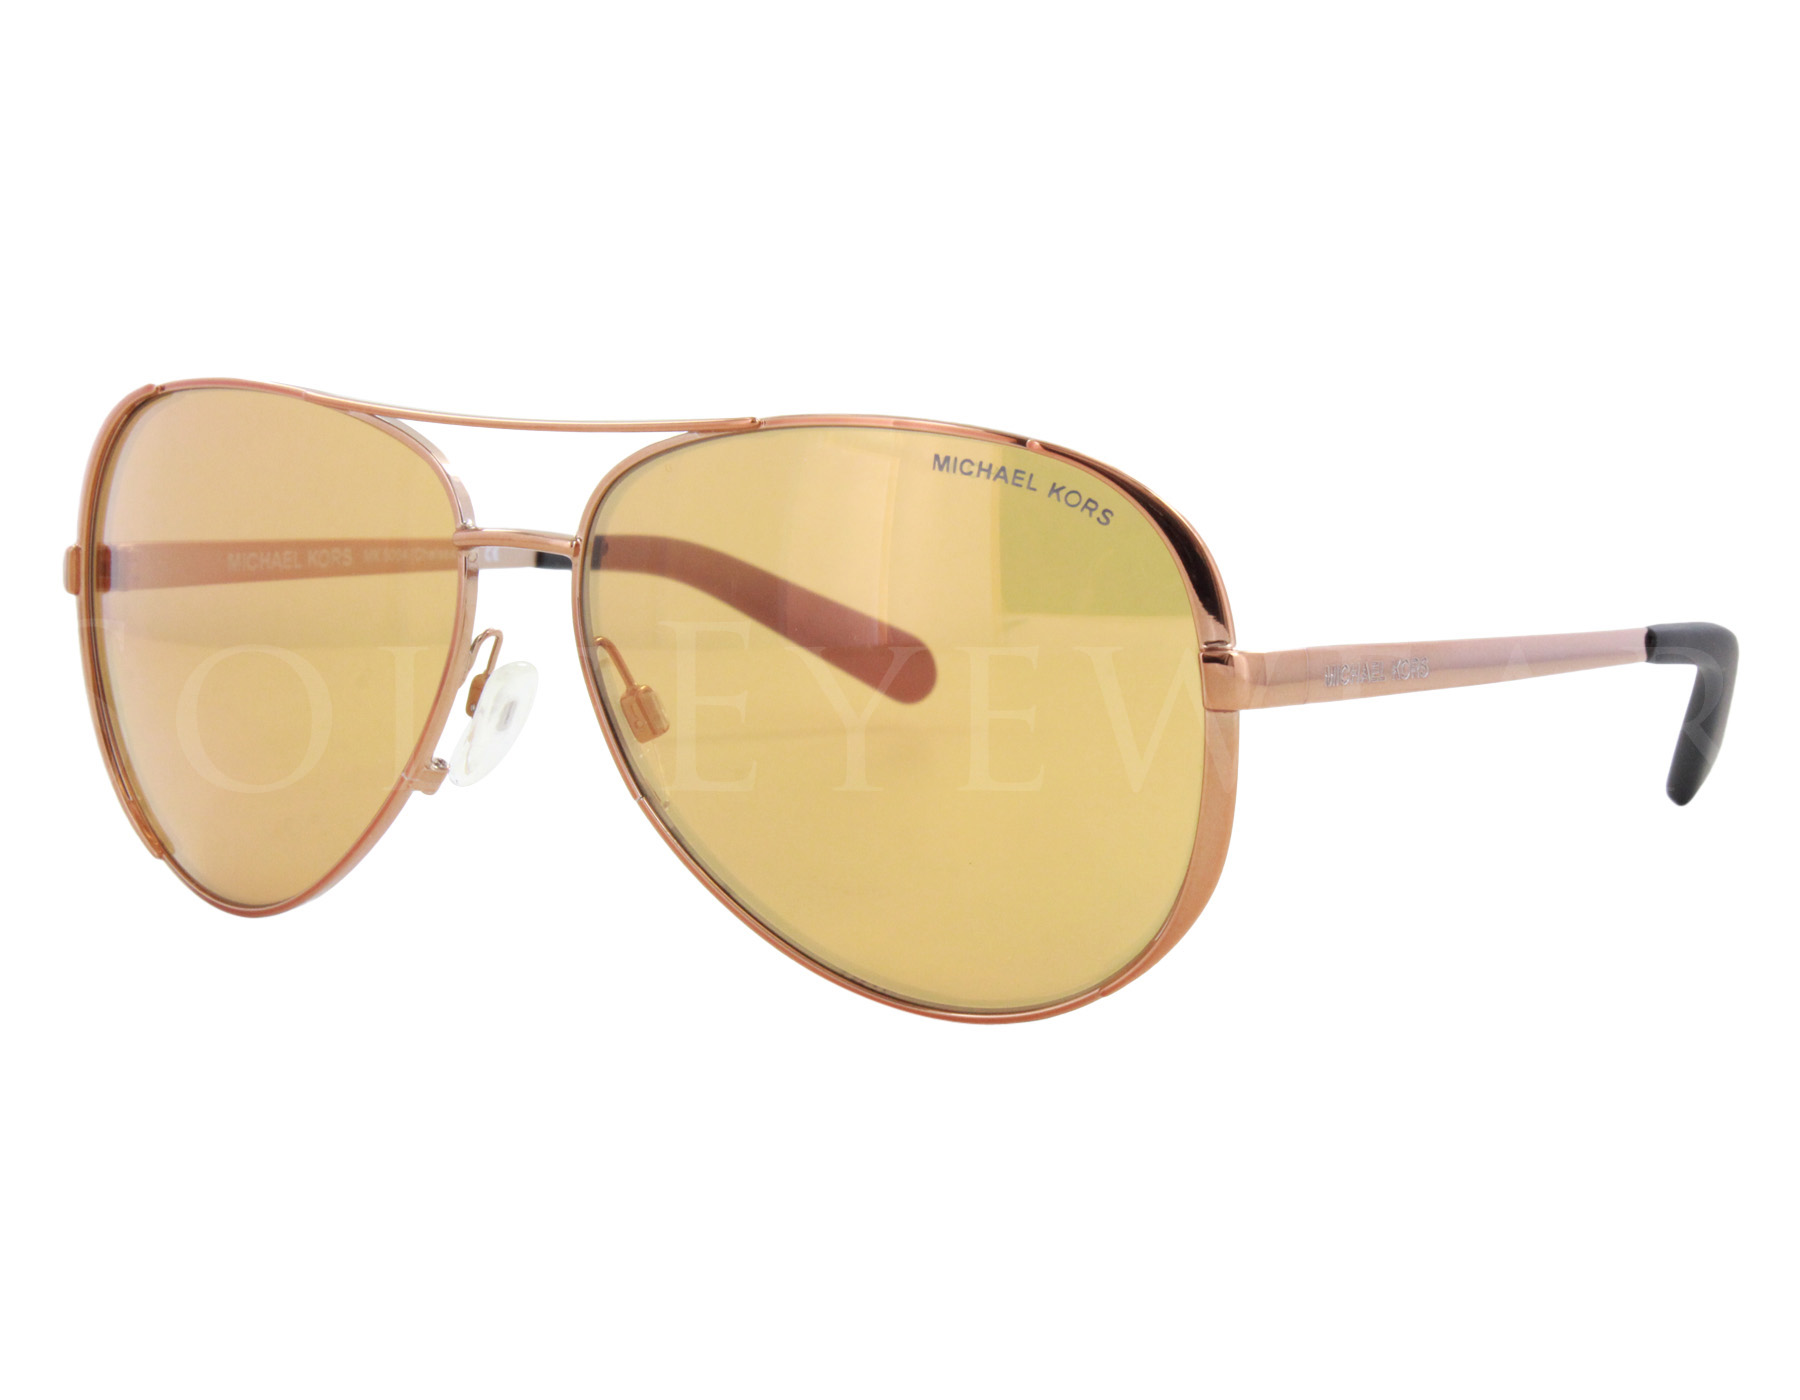 Details about NEW Michael Kors MK5004 10915N Chelsea Copper   Gold Mirror  Sunglasses 6a24386755